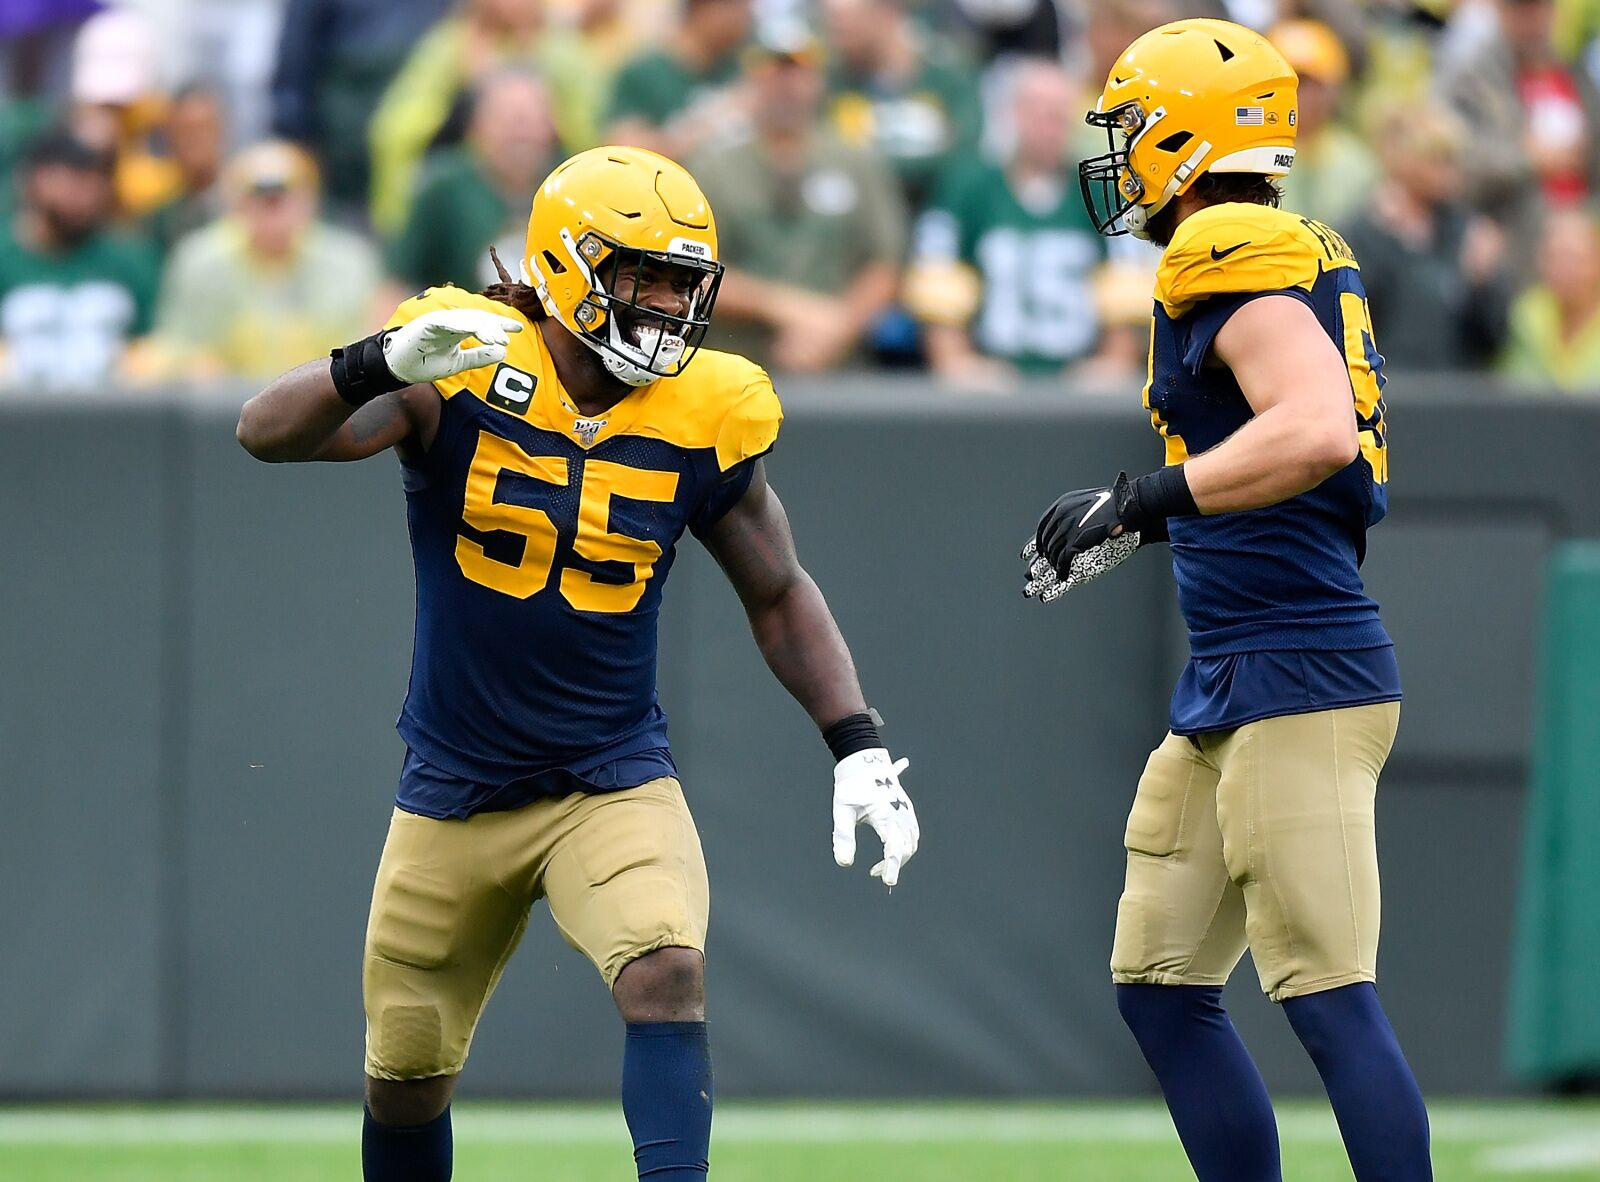 NFC North Week 3: Packers remain in first place after victory